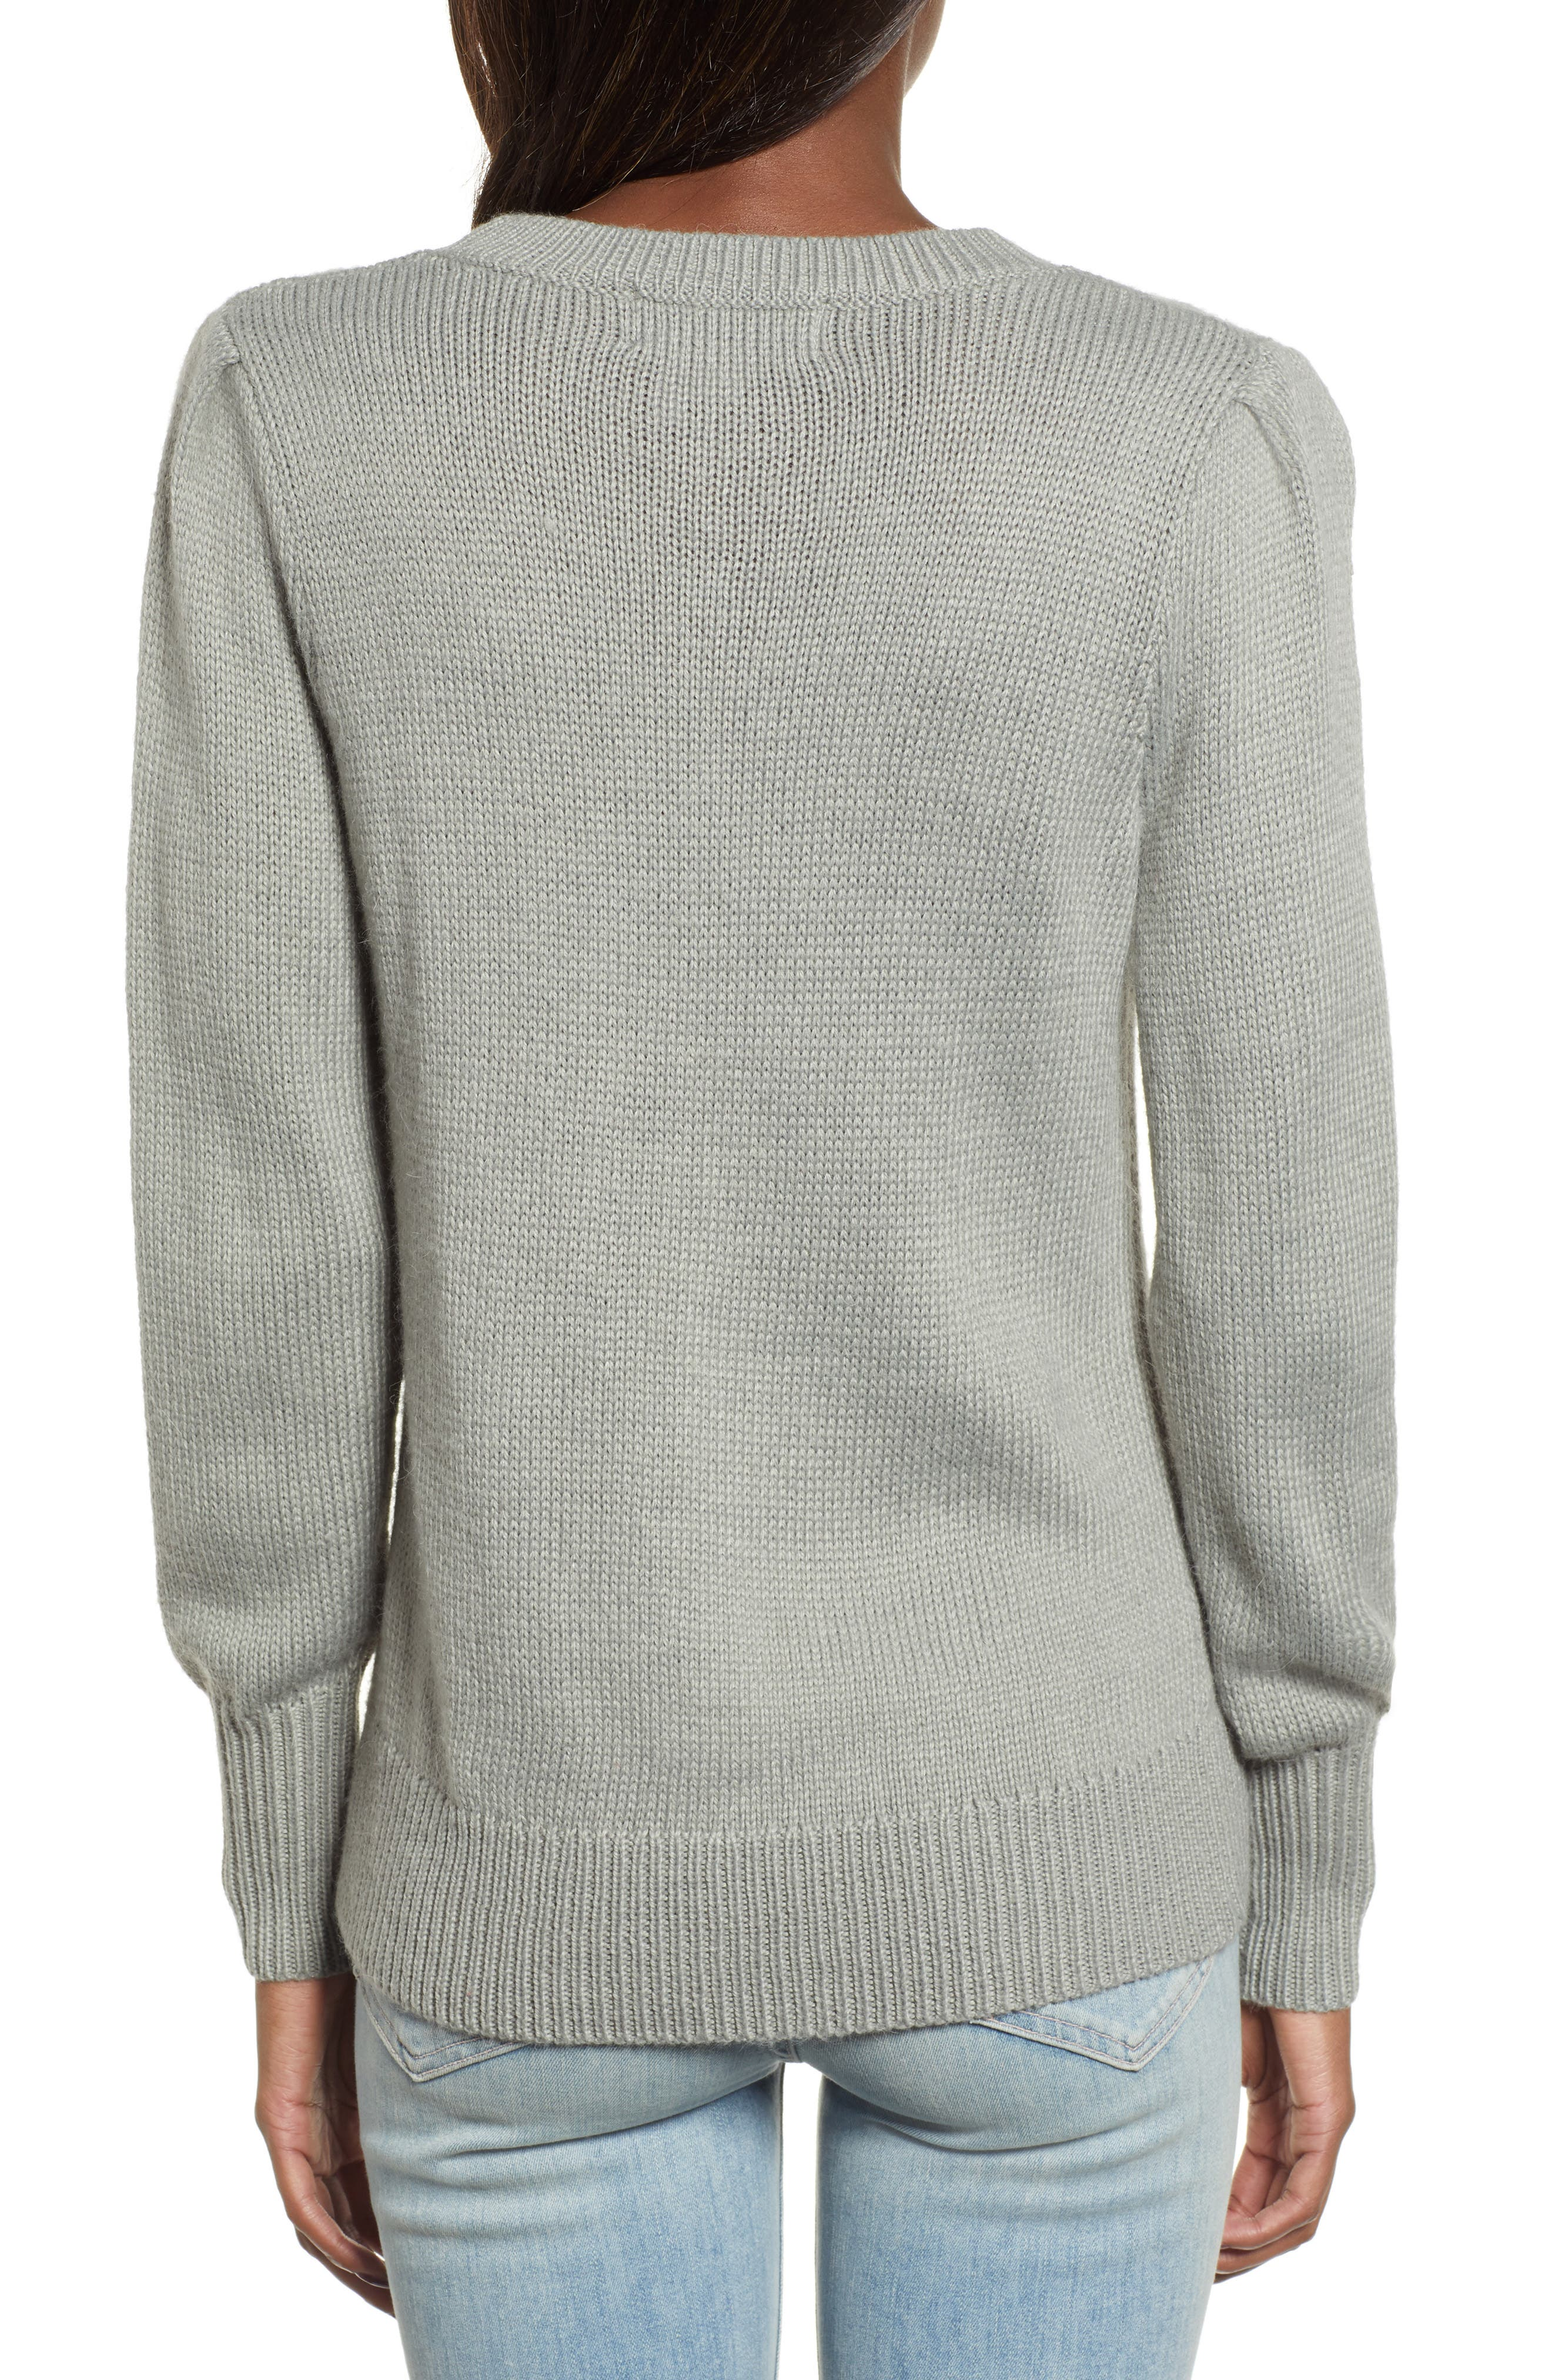 WILDFOX,                             Diet Coke<sup>®</sup> Sweater,                             Alternate thumbnail 2, color,                             050